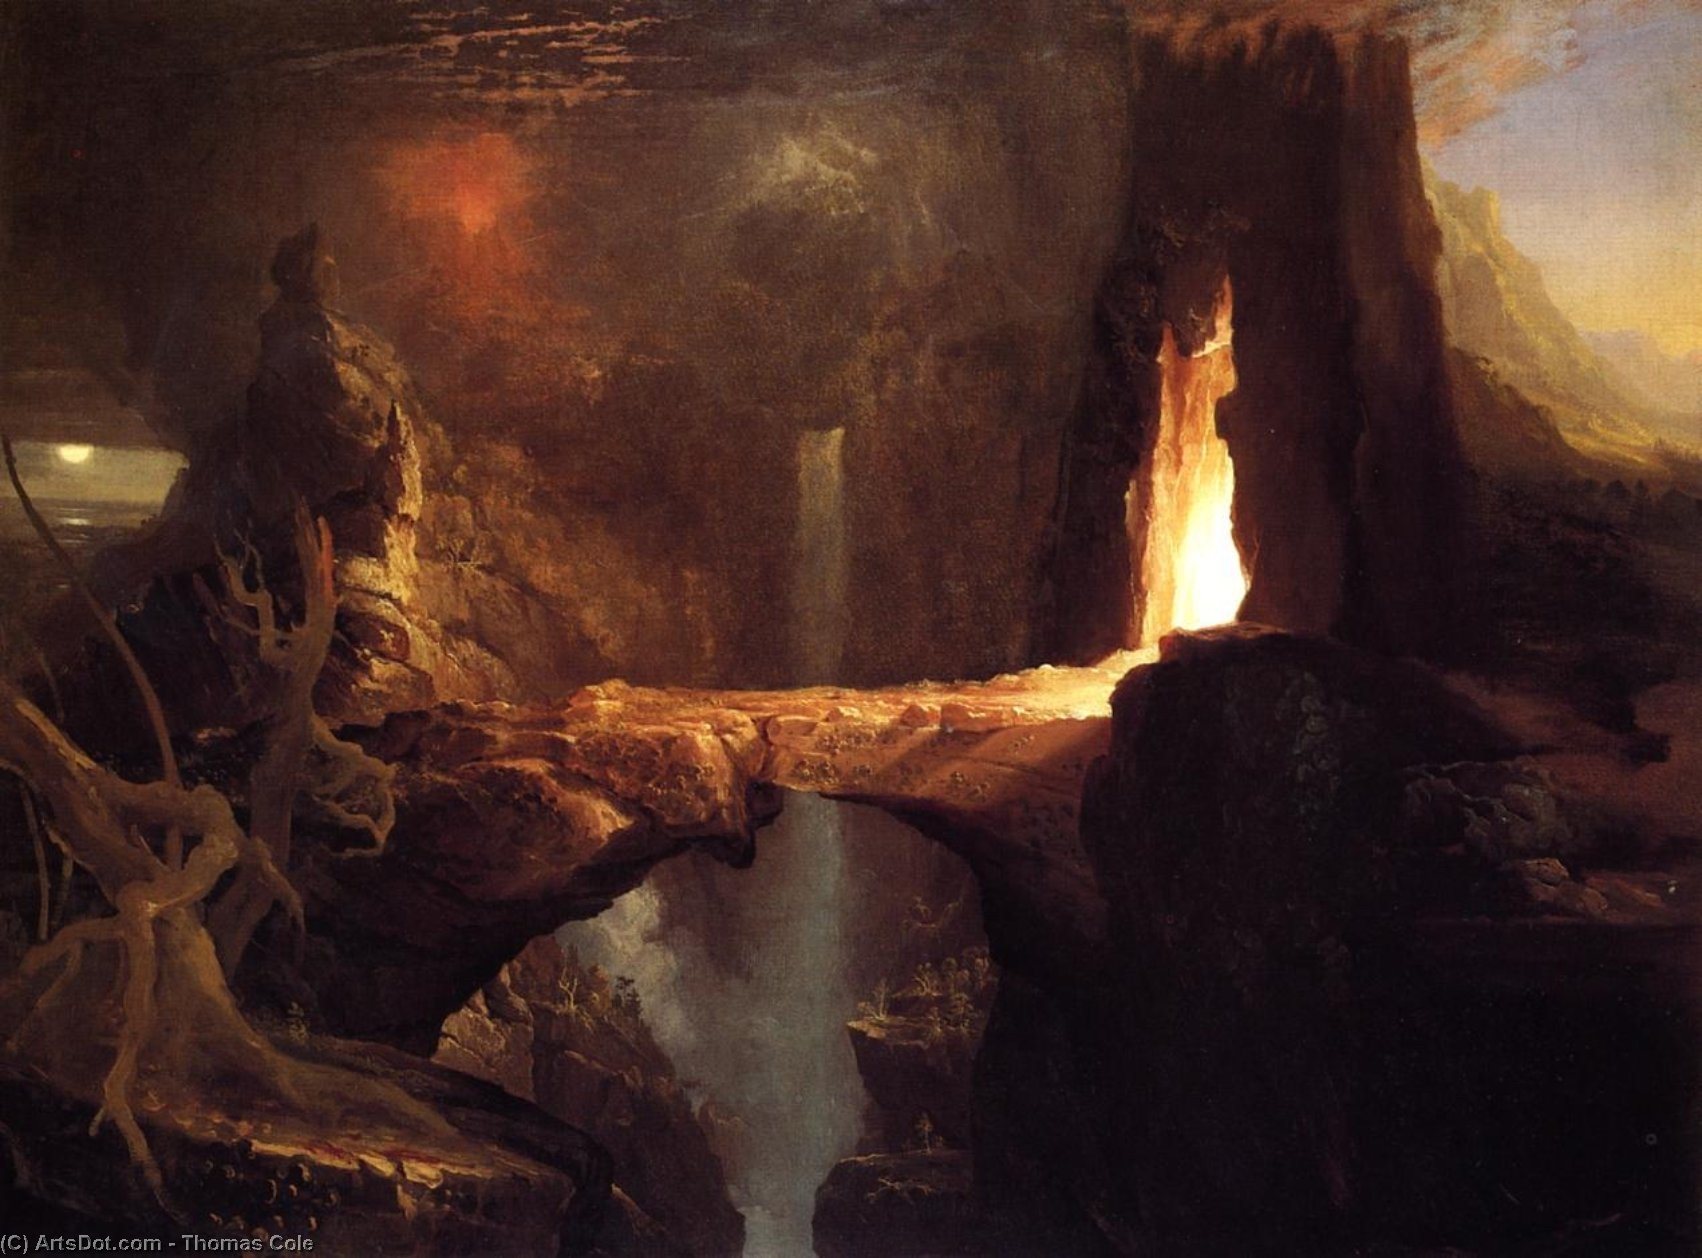 Espulsione . luna e firelight, 1828 di Thomas Cole (1801-1848, United Kingdom) | Copia Pittura | ArtsDot.com